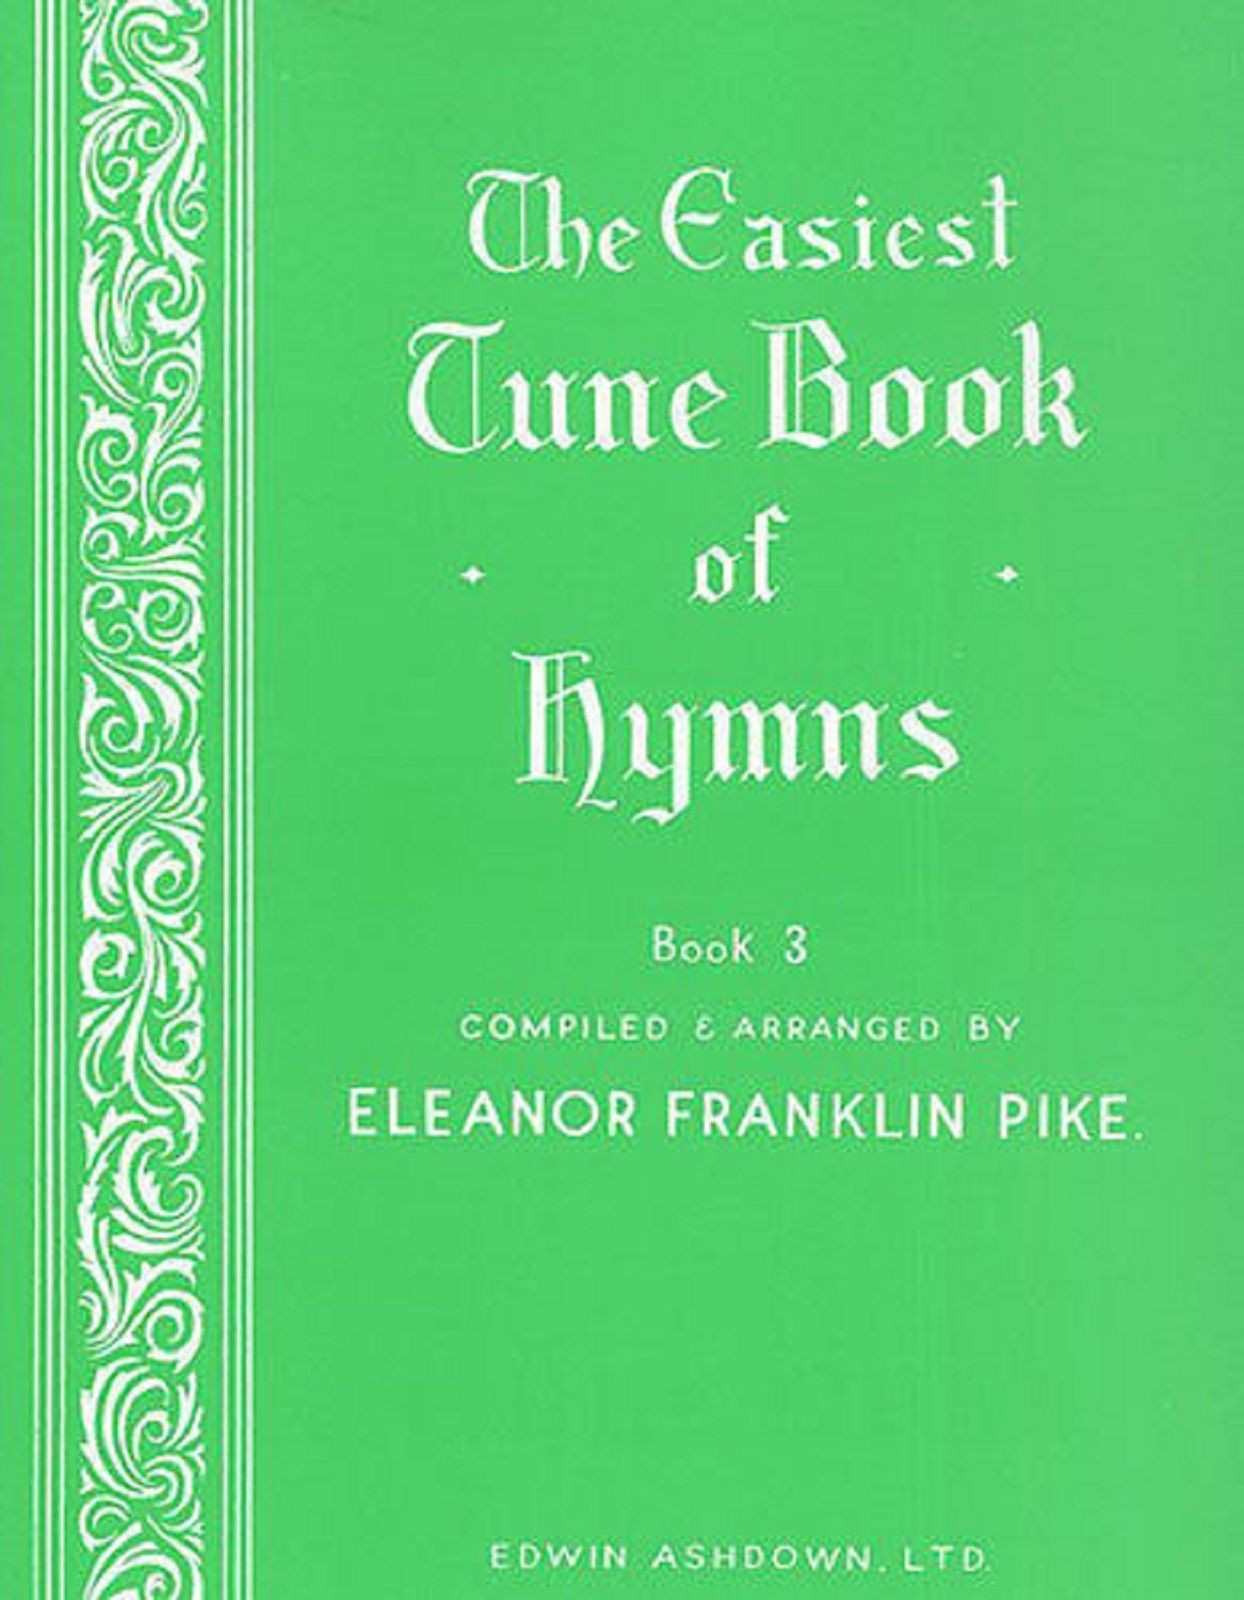 Easiest Tune Book of Hymns Book 3 Learn Play Easy Piano Sheet Church Music S162